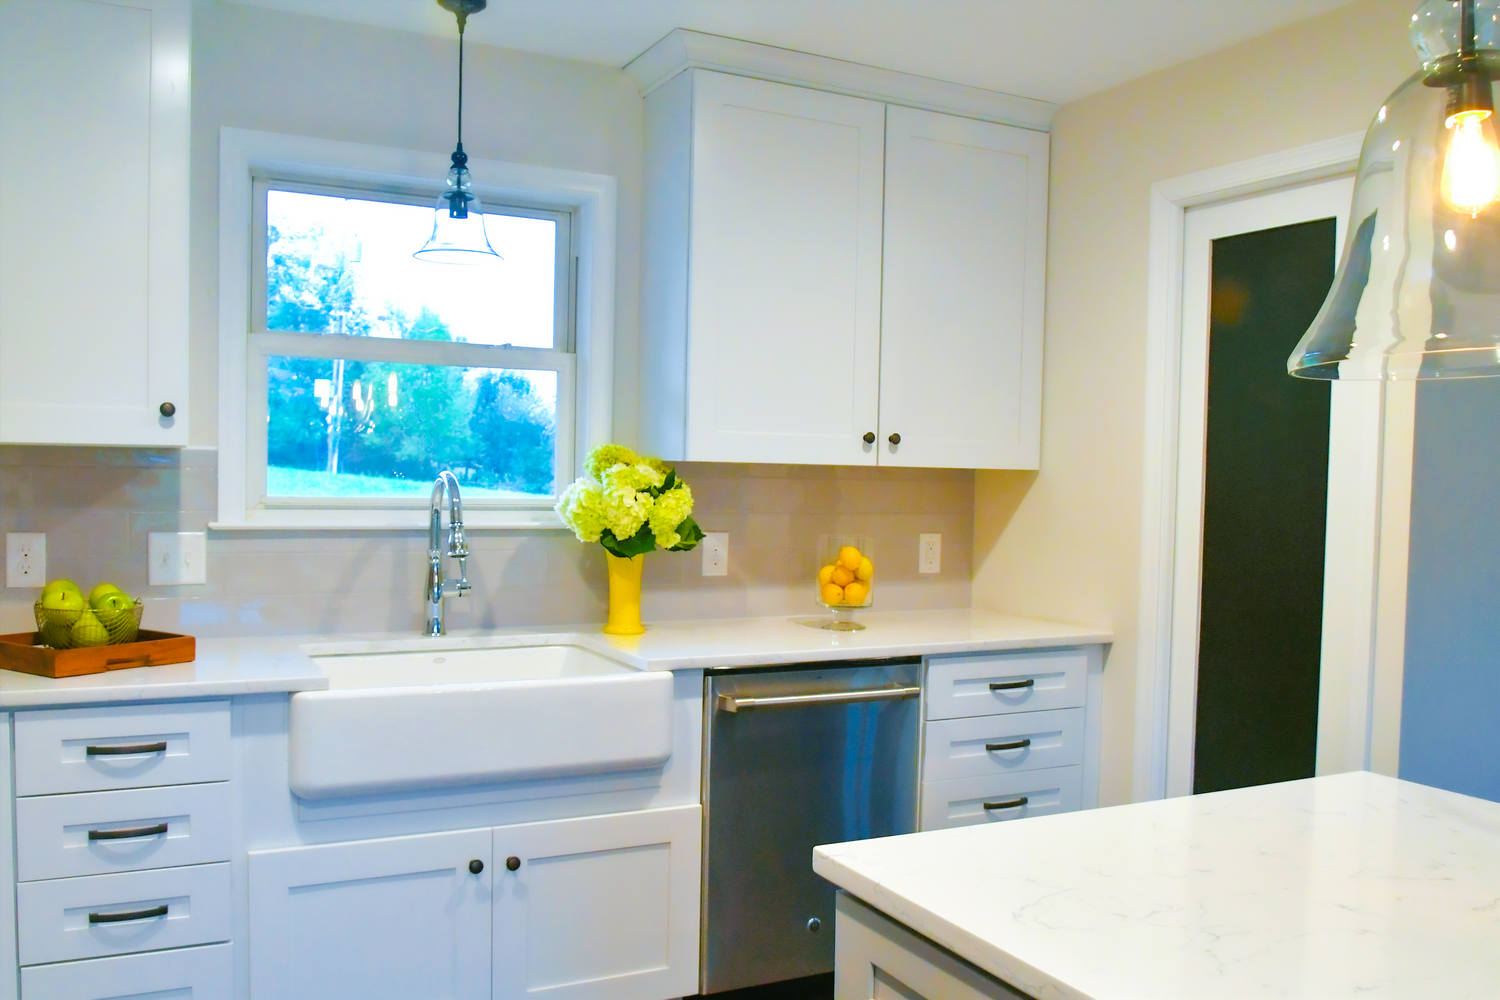 bright-cheery-kitchen-in-a-new-home-with-open-conc-JVTAZJG